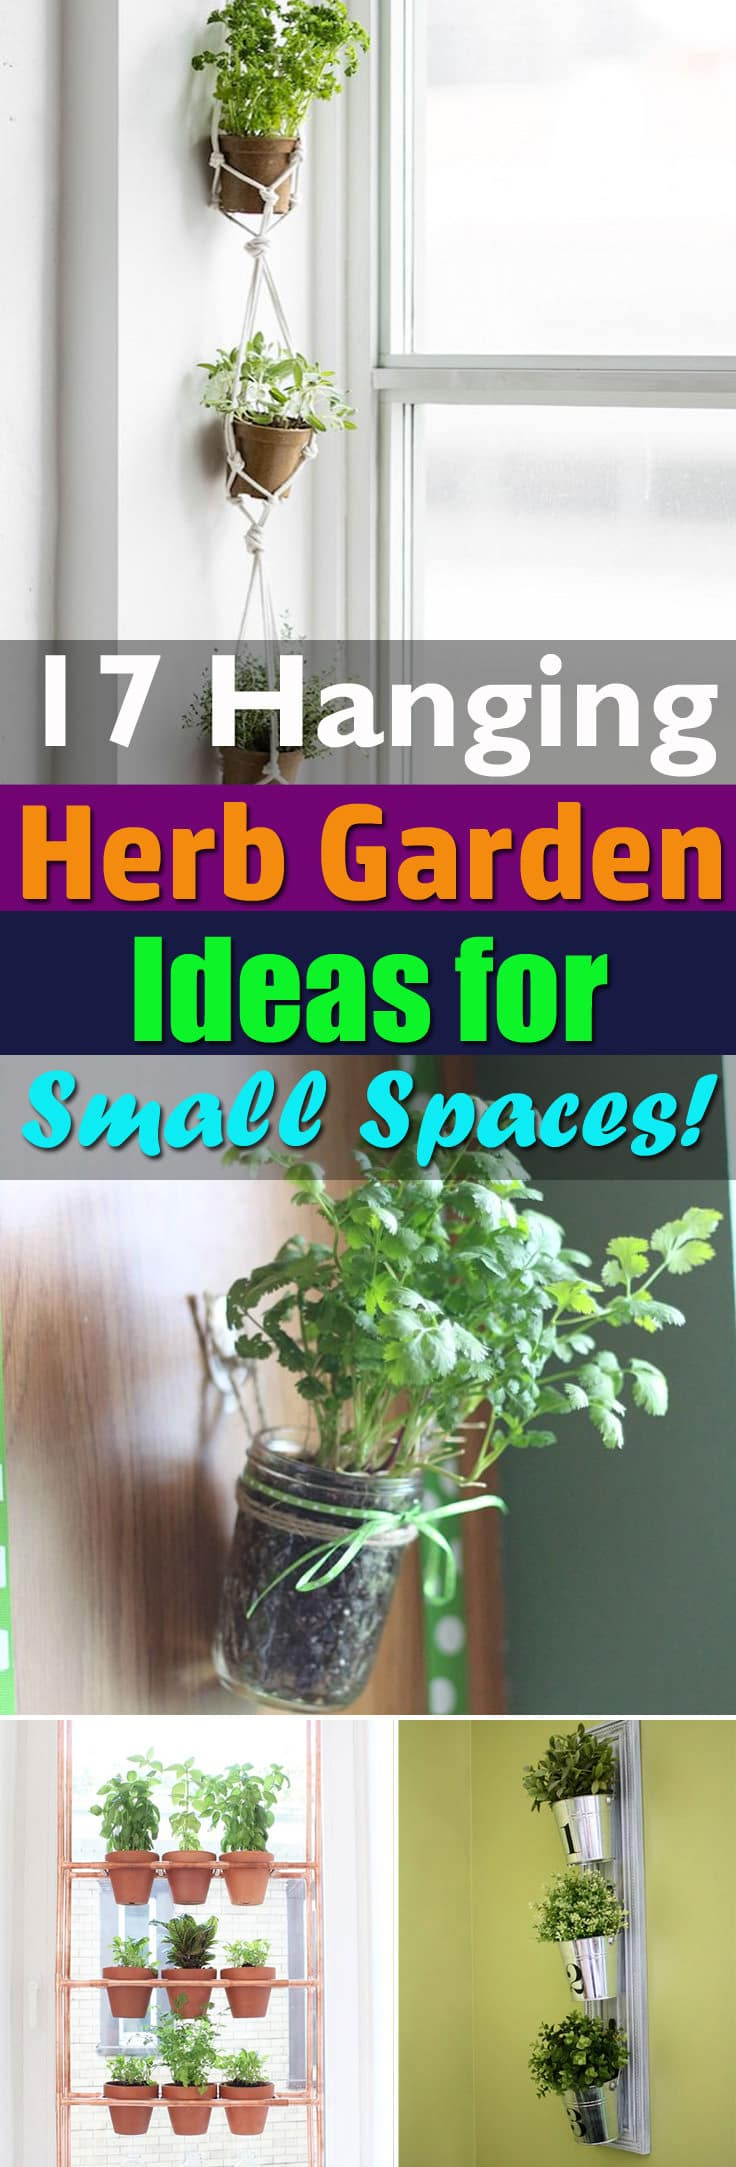 17 hanging herb garden ideas for small spaces balcony garden web if space is premium but you still want to grow your favorite herbs then try these workwithnaturefo